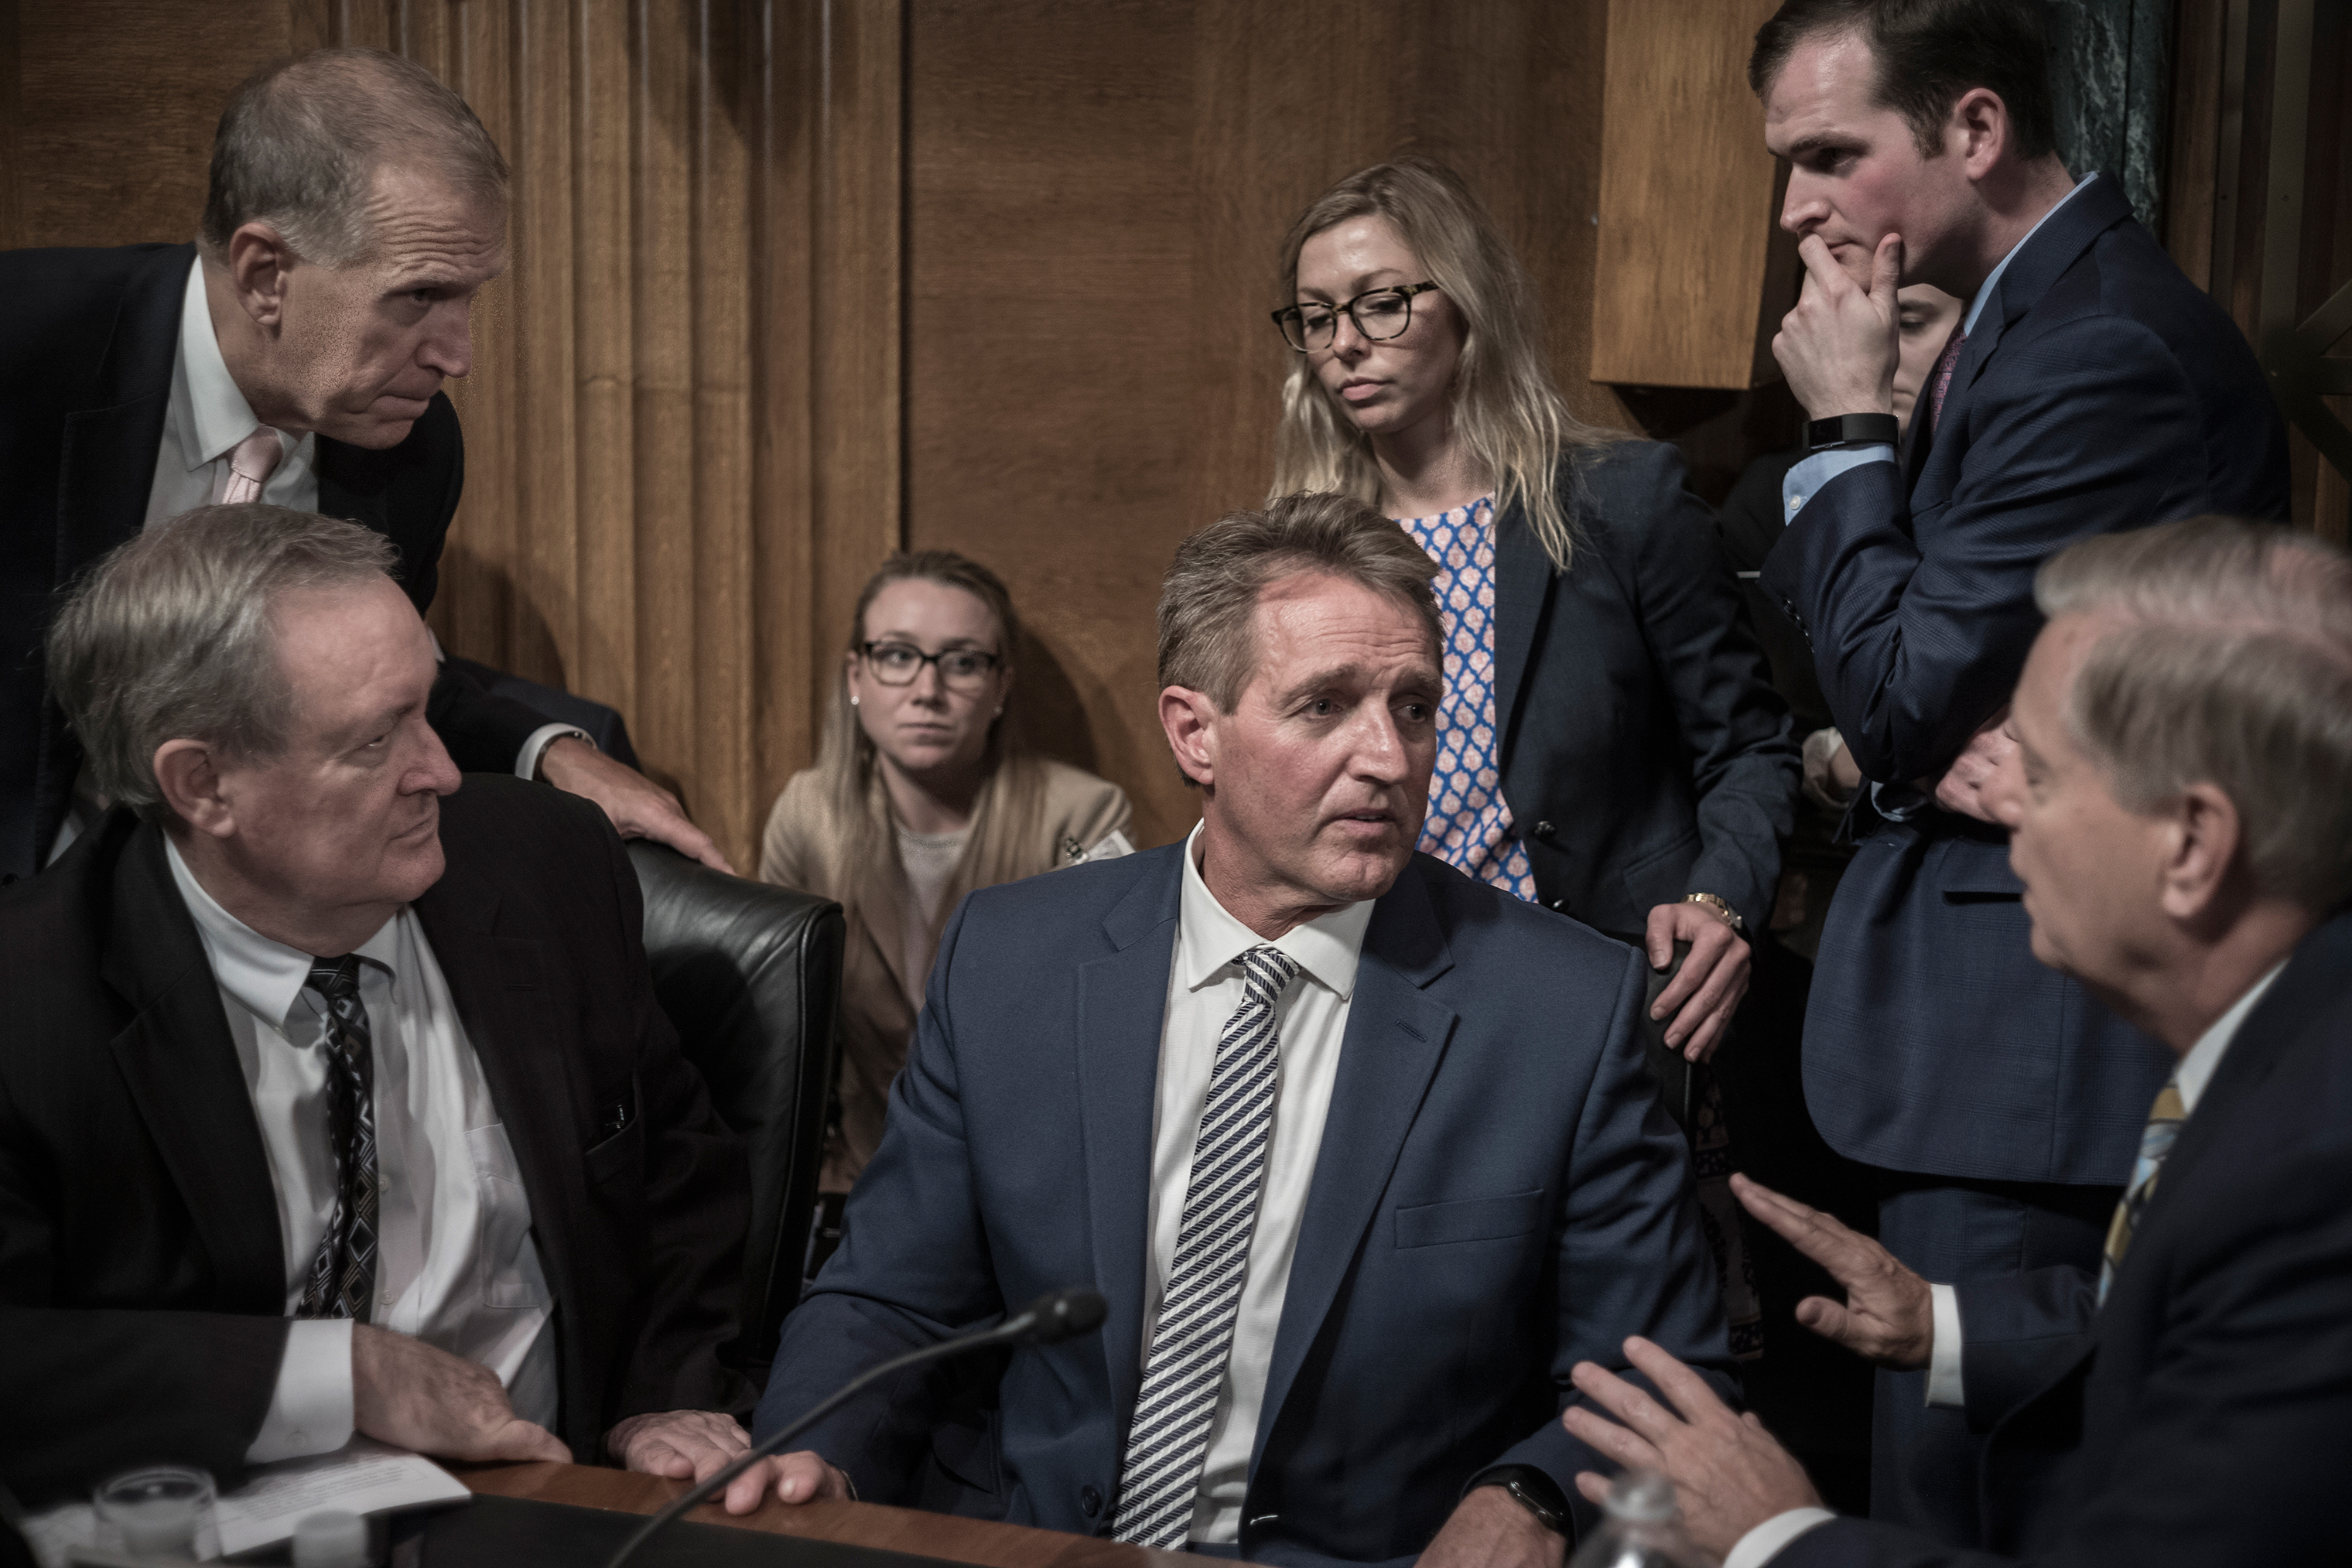 Jeff Flake, center, listens to fellow GOP Senator Lindsey Graham, right, on Sept. 28, moments after Flake called for a delay in Brett Kavanaugh's Supreme Court confirmation. His change of heart proved brief; eight days later he joined a slim majority to elevate Kavanaugh to the bench.